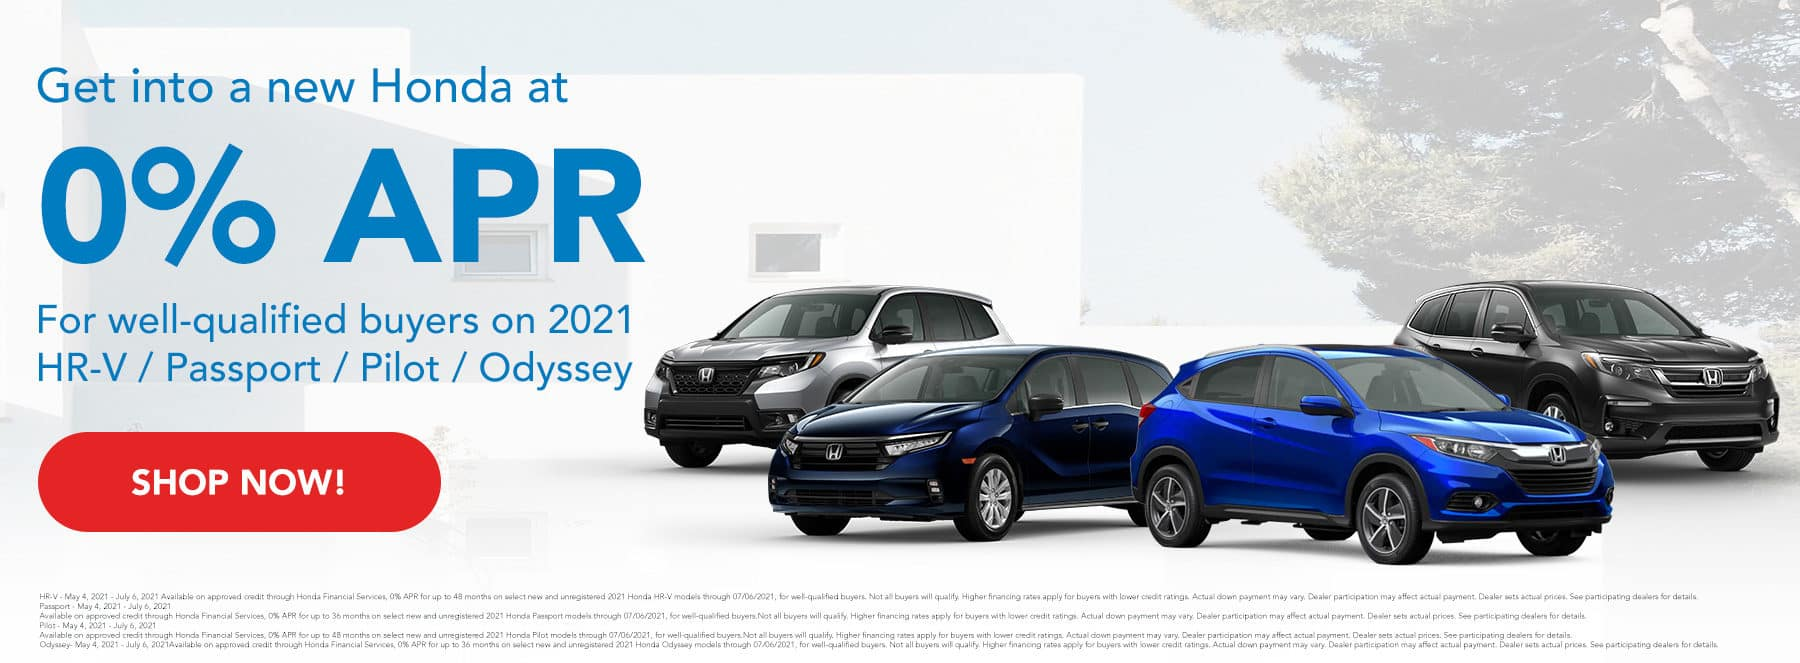 Get into a new Honda at 0% APR. For well-qualified buyers on 2021 HR-V / Passport / Pilot / Odyssey